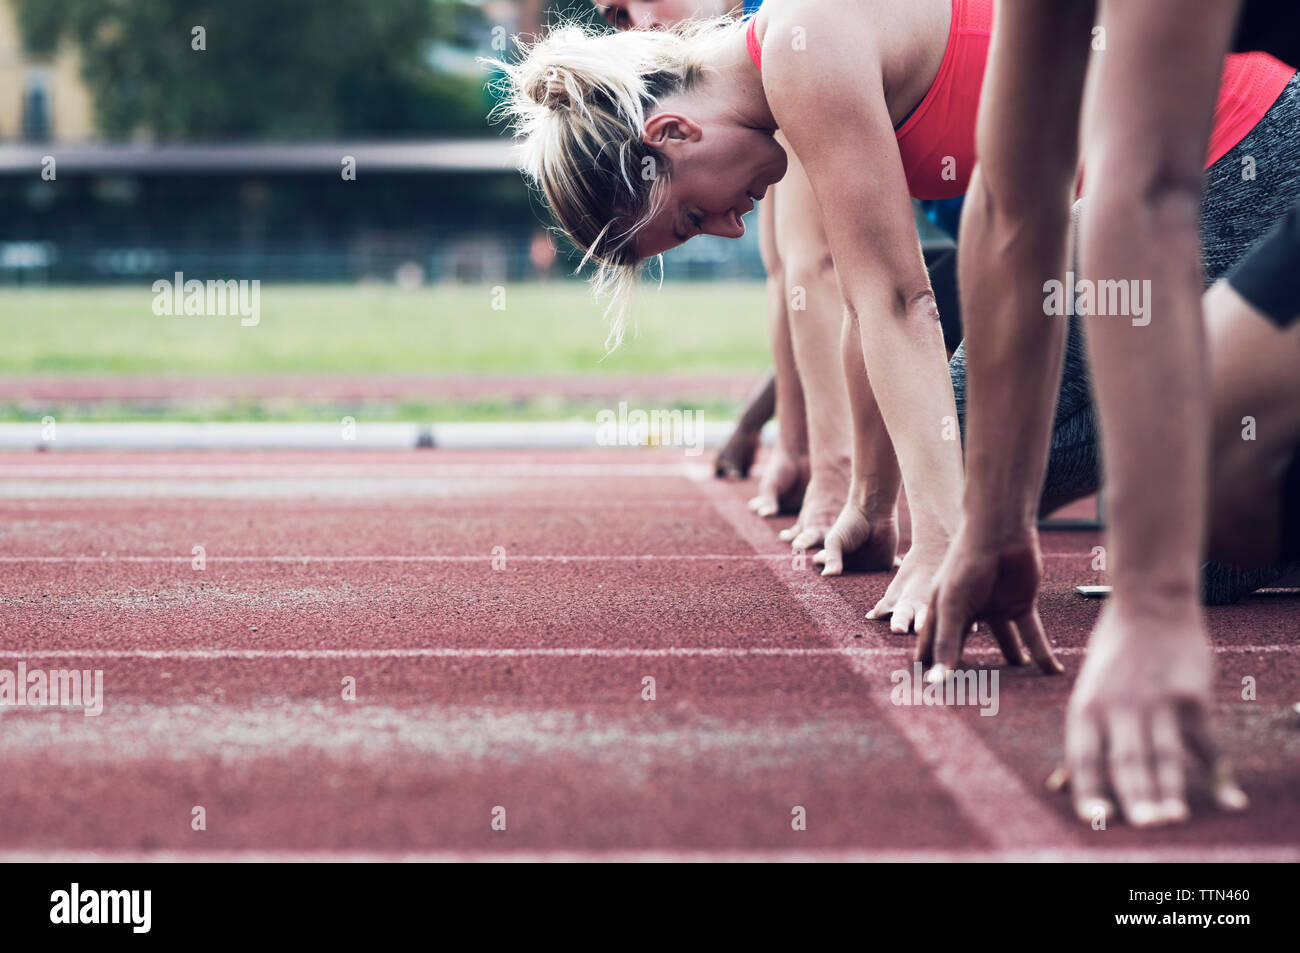 Runners poised at starting line on track - Stock Image